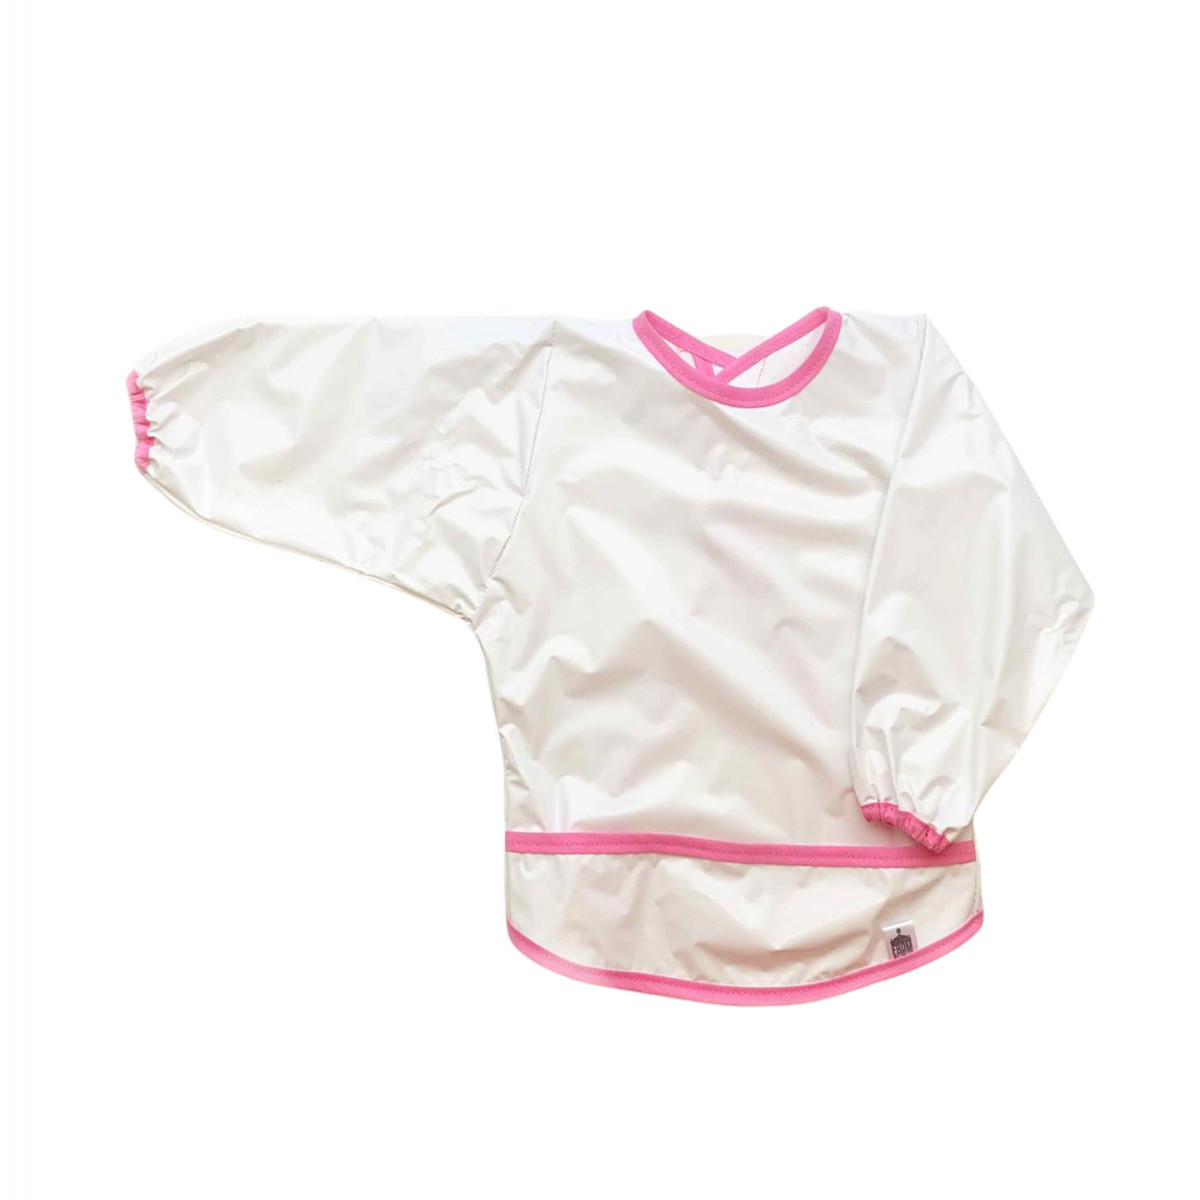 PINTORCITO BLANCO TALLE 1  rosa